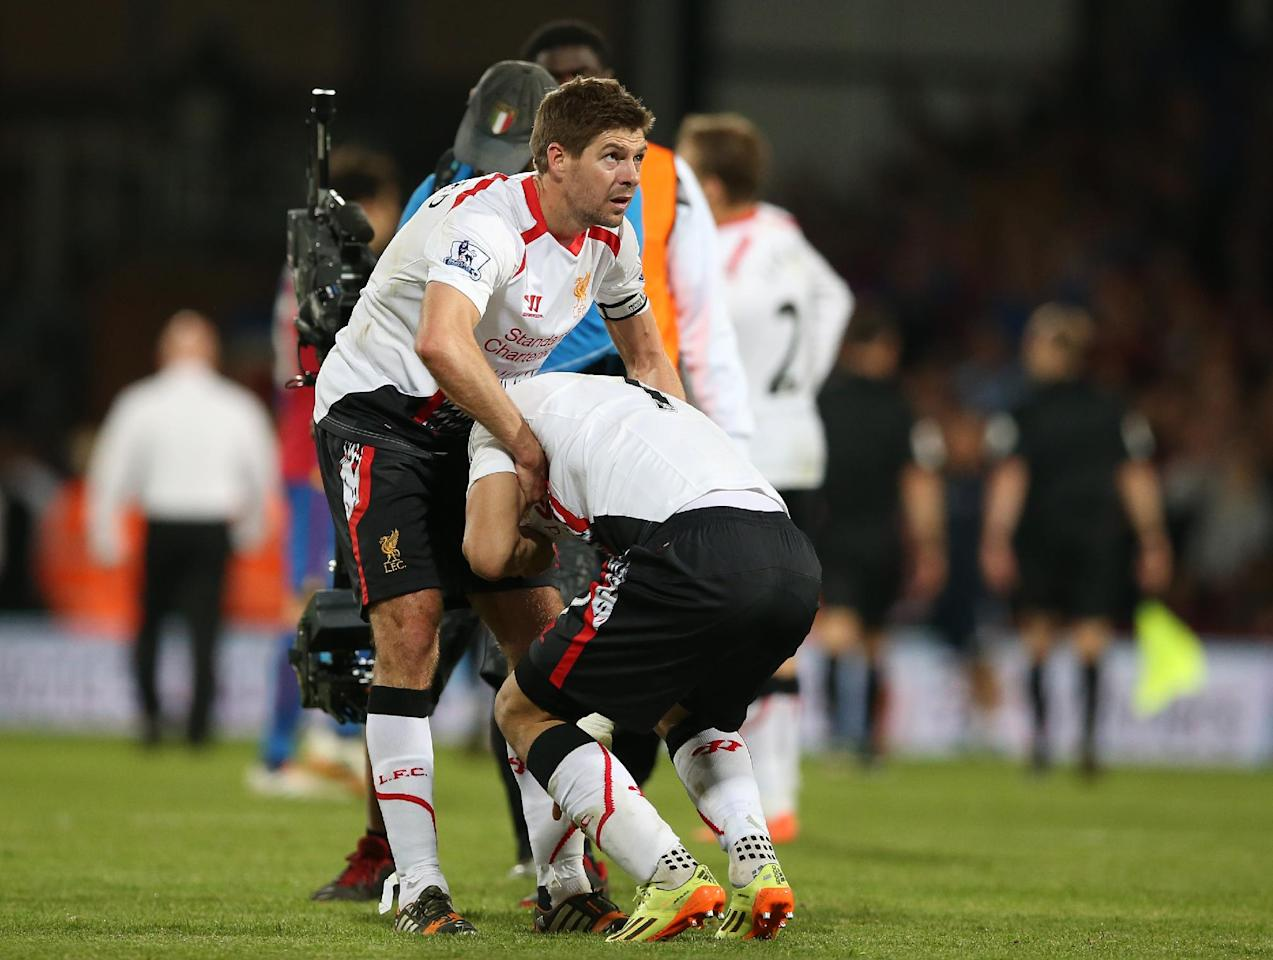 Liverpool's Steven Gerrard, left helps teammate Luis Suarez, following the end of the English Premier League soccer match between Crystal Palace and Liverpool at Selhurst Park stadium in London, Monday, May 5, 2014. The game ended in a 3-3 draw. (AP Photo/Alastair Grant)